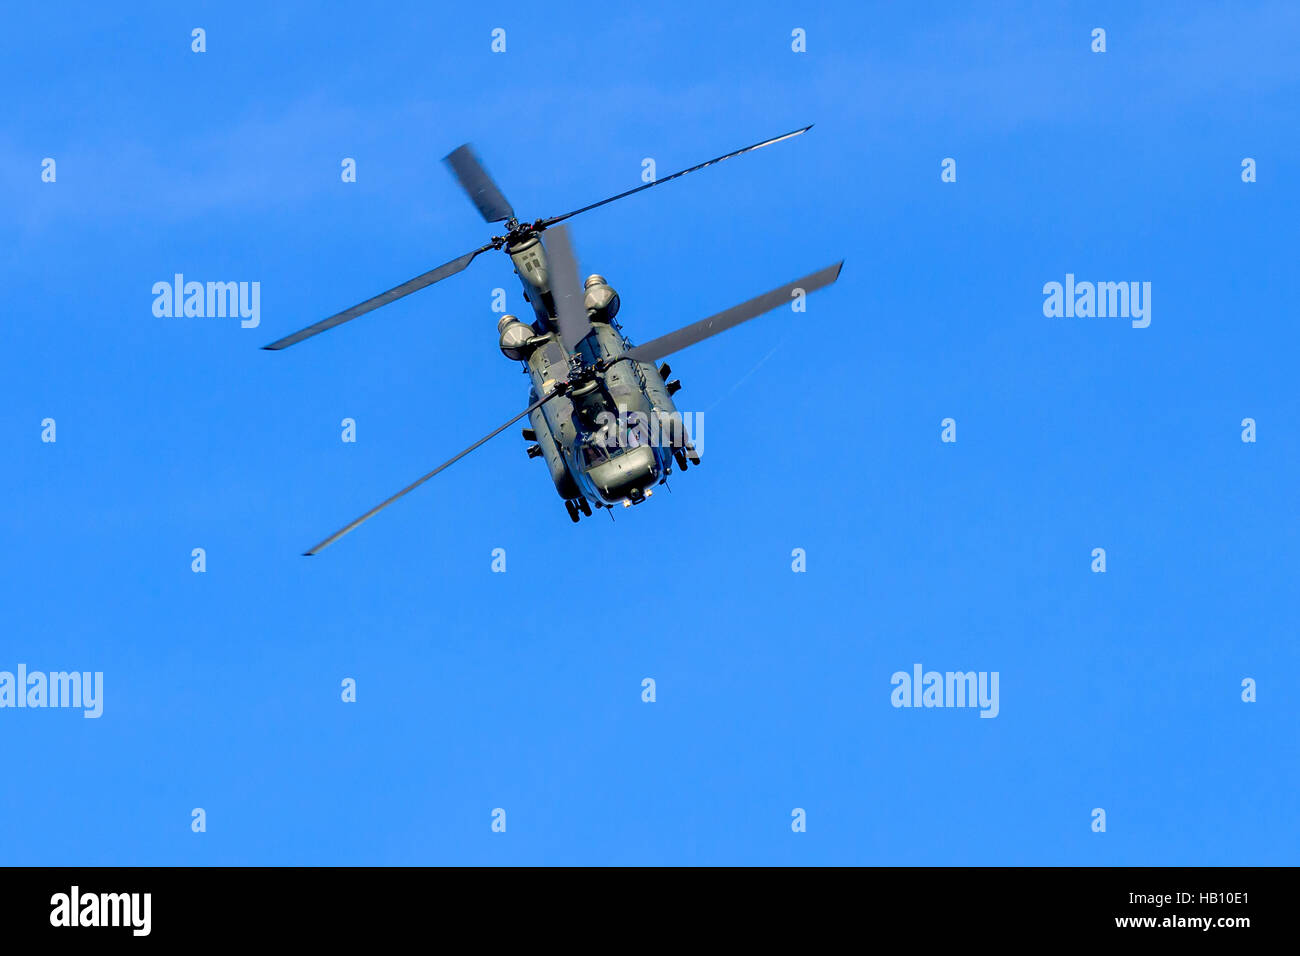 The Ch-47 Chinook Helicopter being displayed by the RAF display team at Southport Airshow - Stock Image